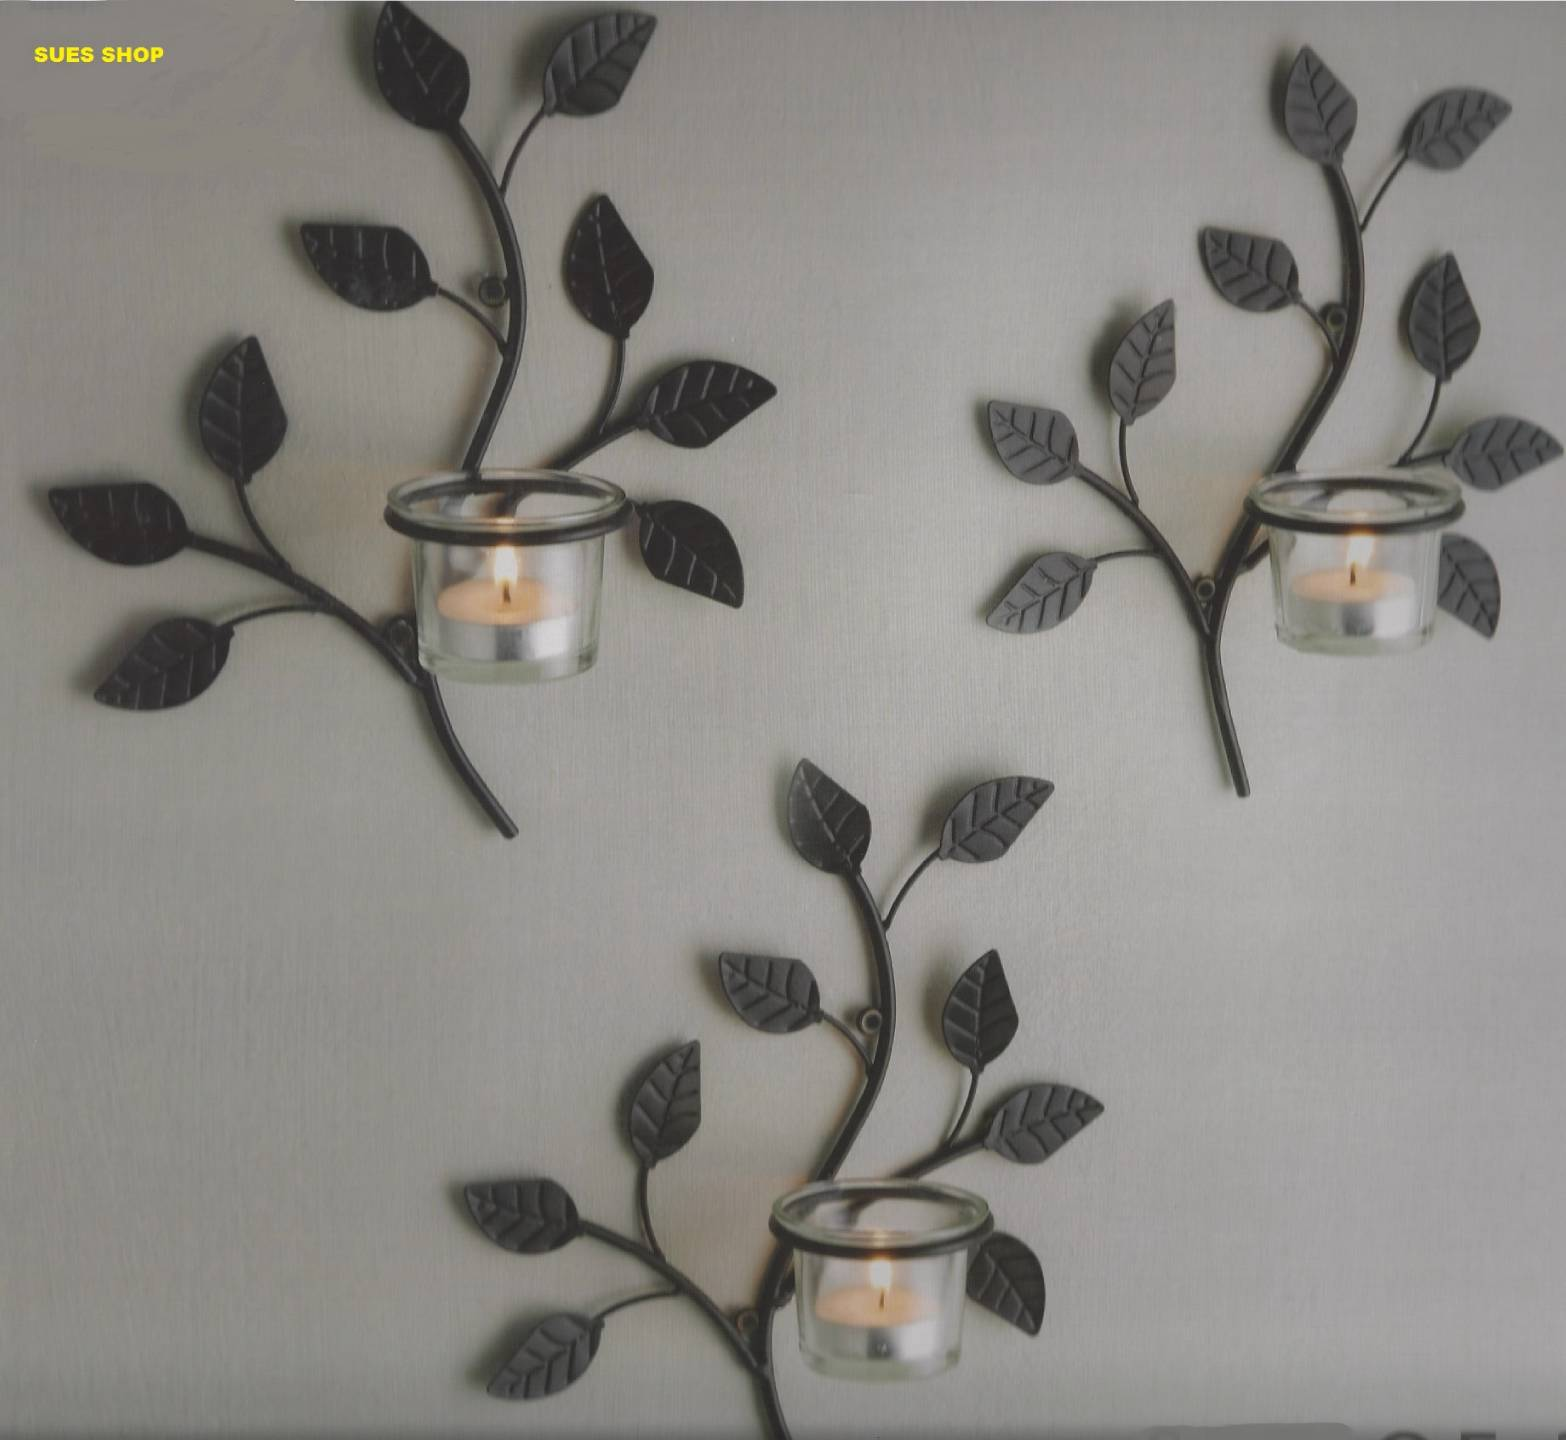 SET of 3 BLACK LEAF SHAPE WALL ART SCONCE METAL TEA LIGHT GLASS CANDLE HOLDERS eBay